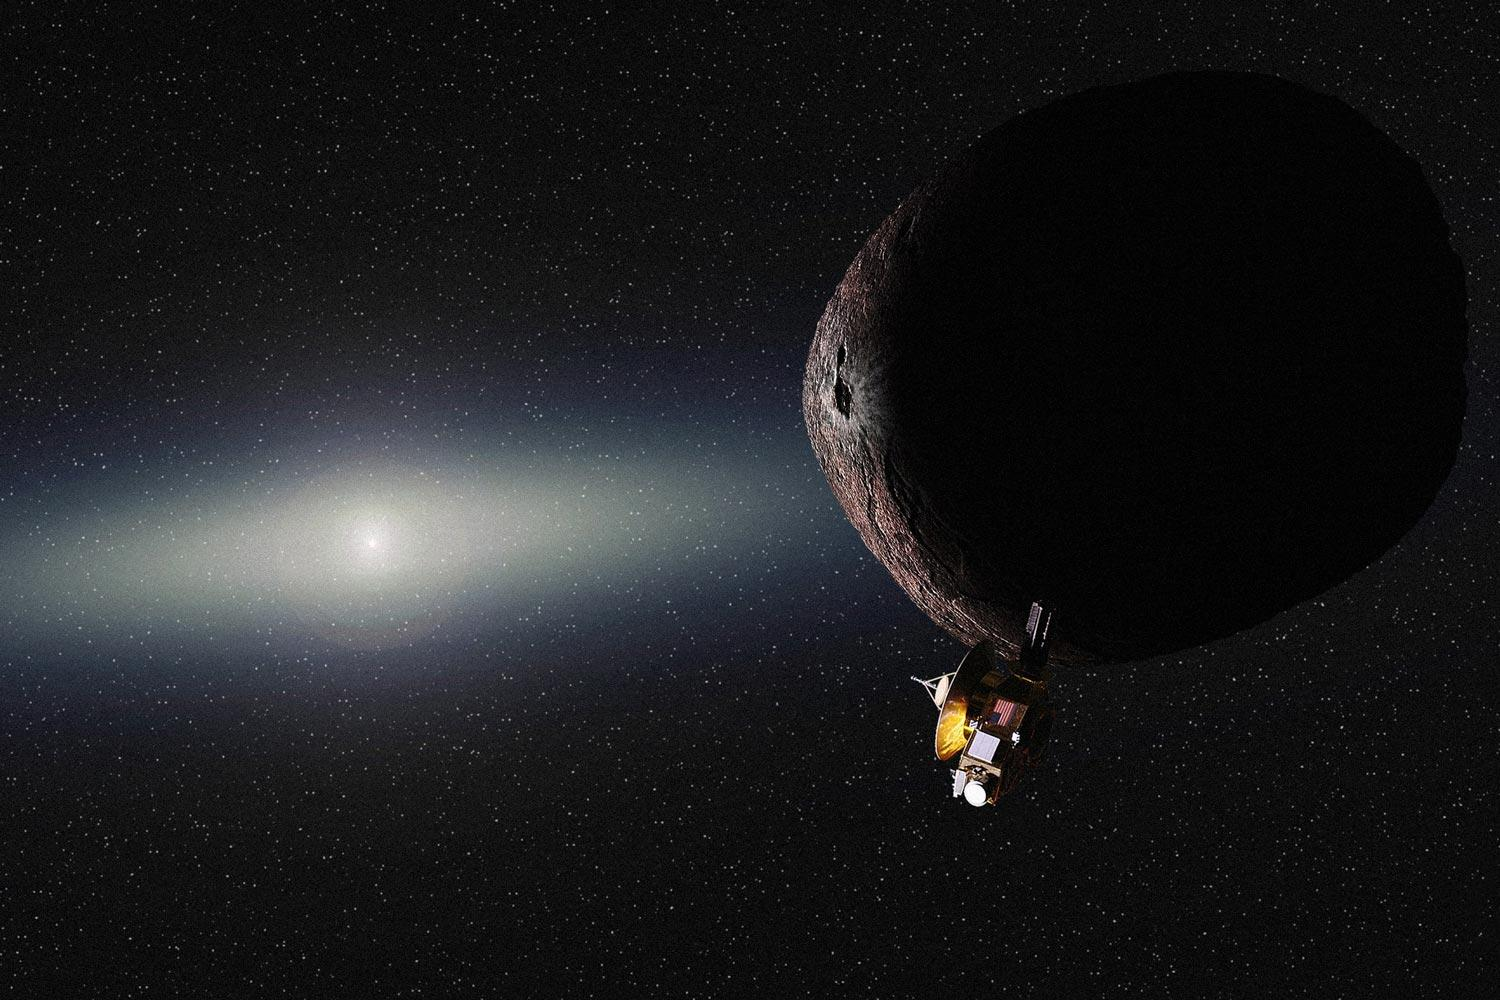 Artist's conception of 2014 MU69 during New Horizons' Jan. 1, 2019 flyby.